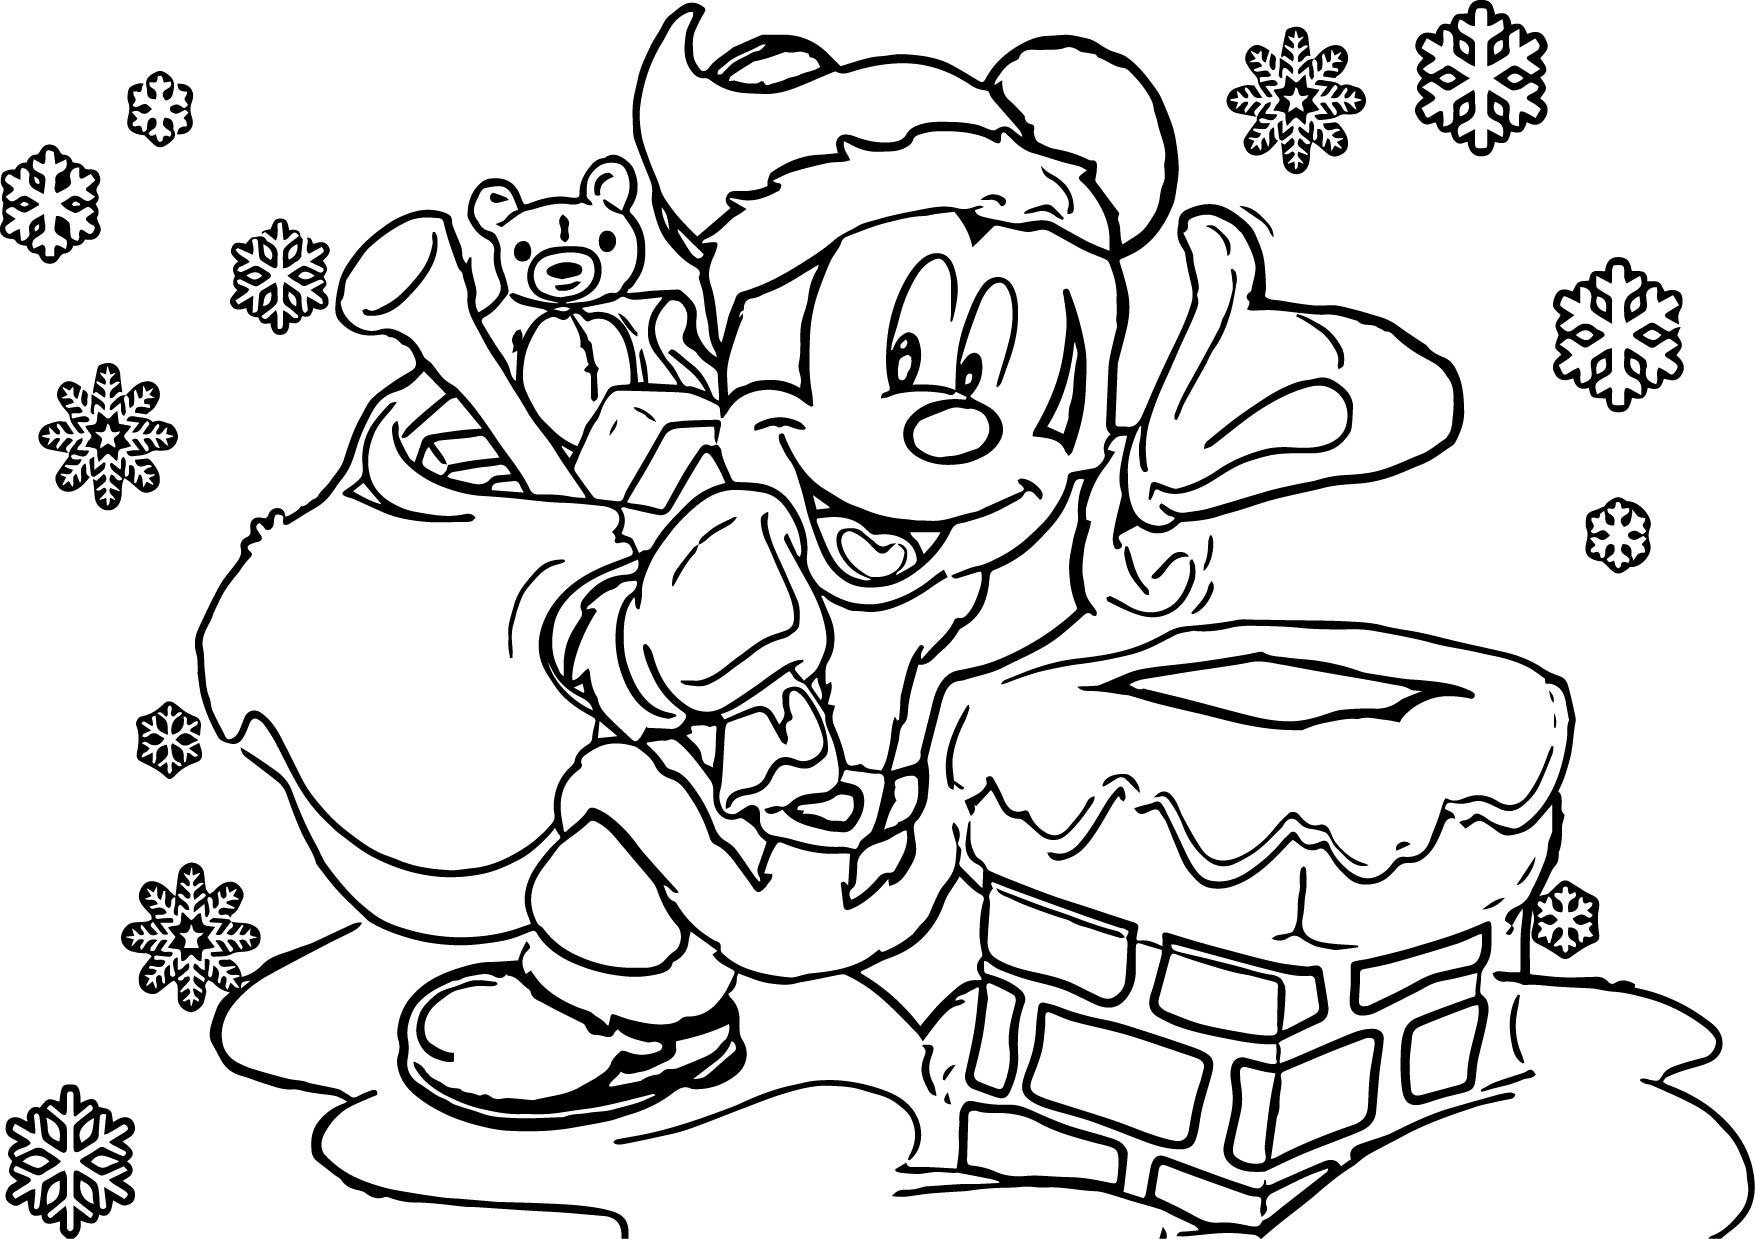 Disney coloring pages spiderman -  Disney Christmas Coloring Pages Download